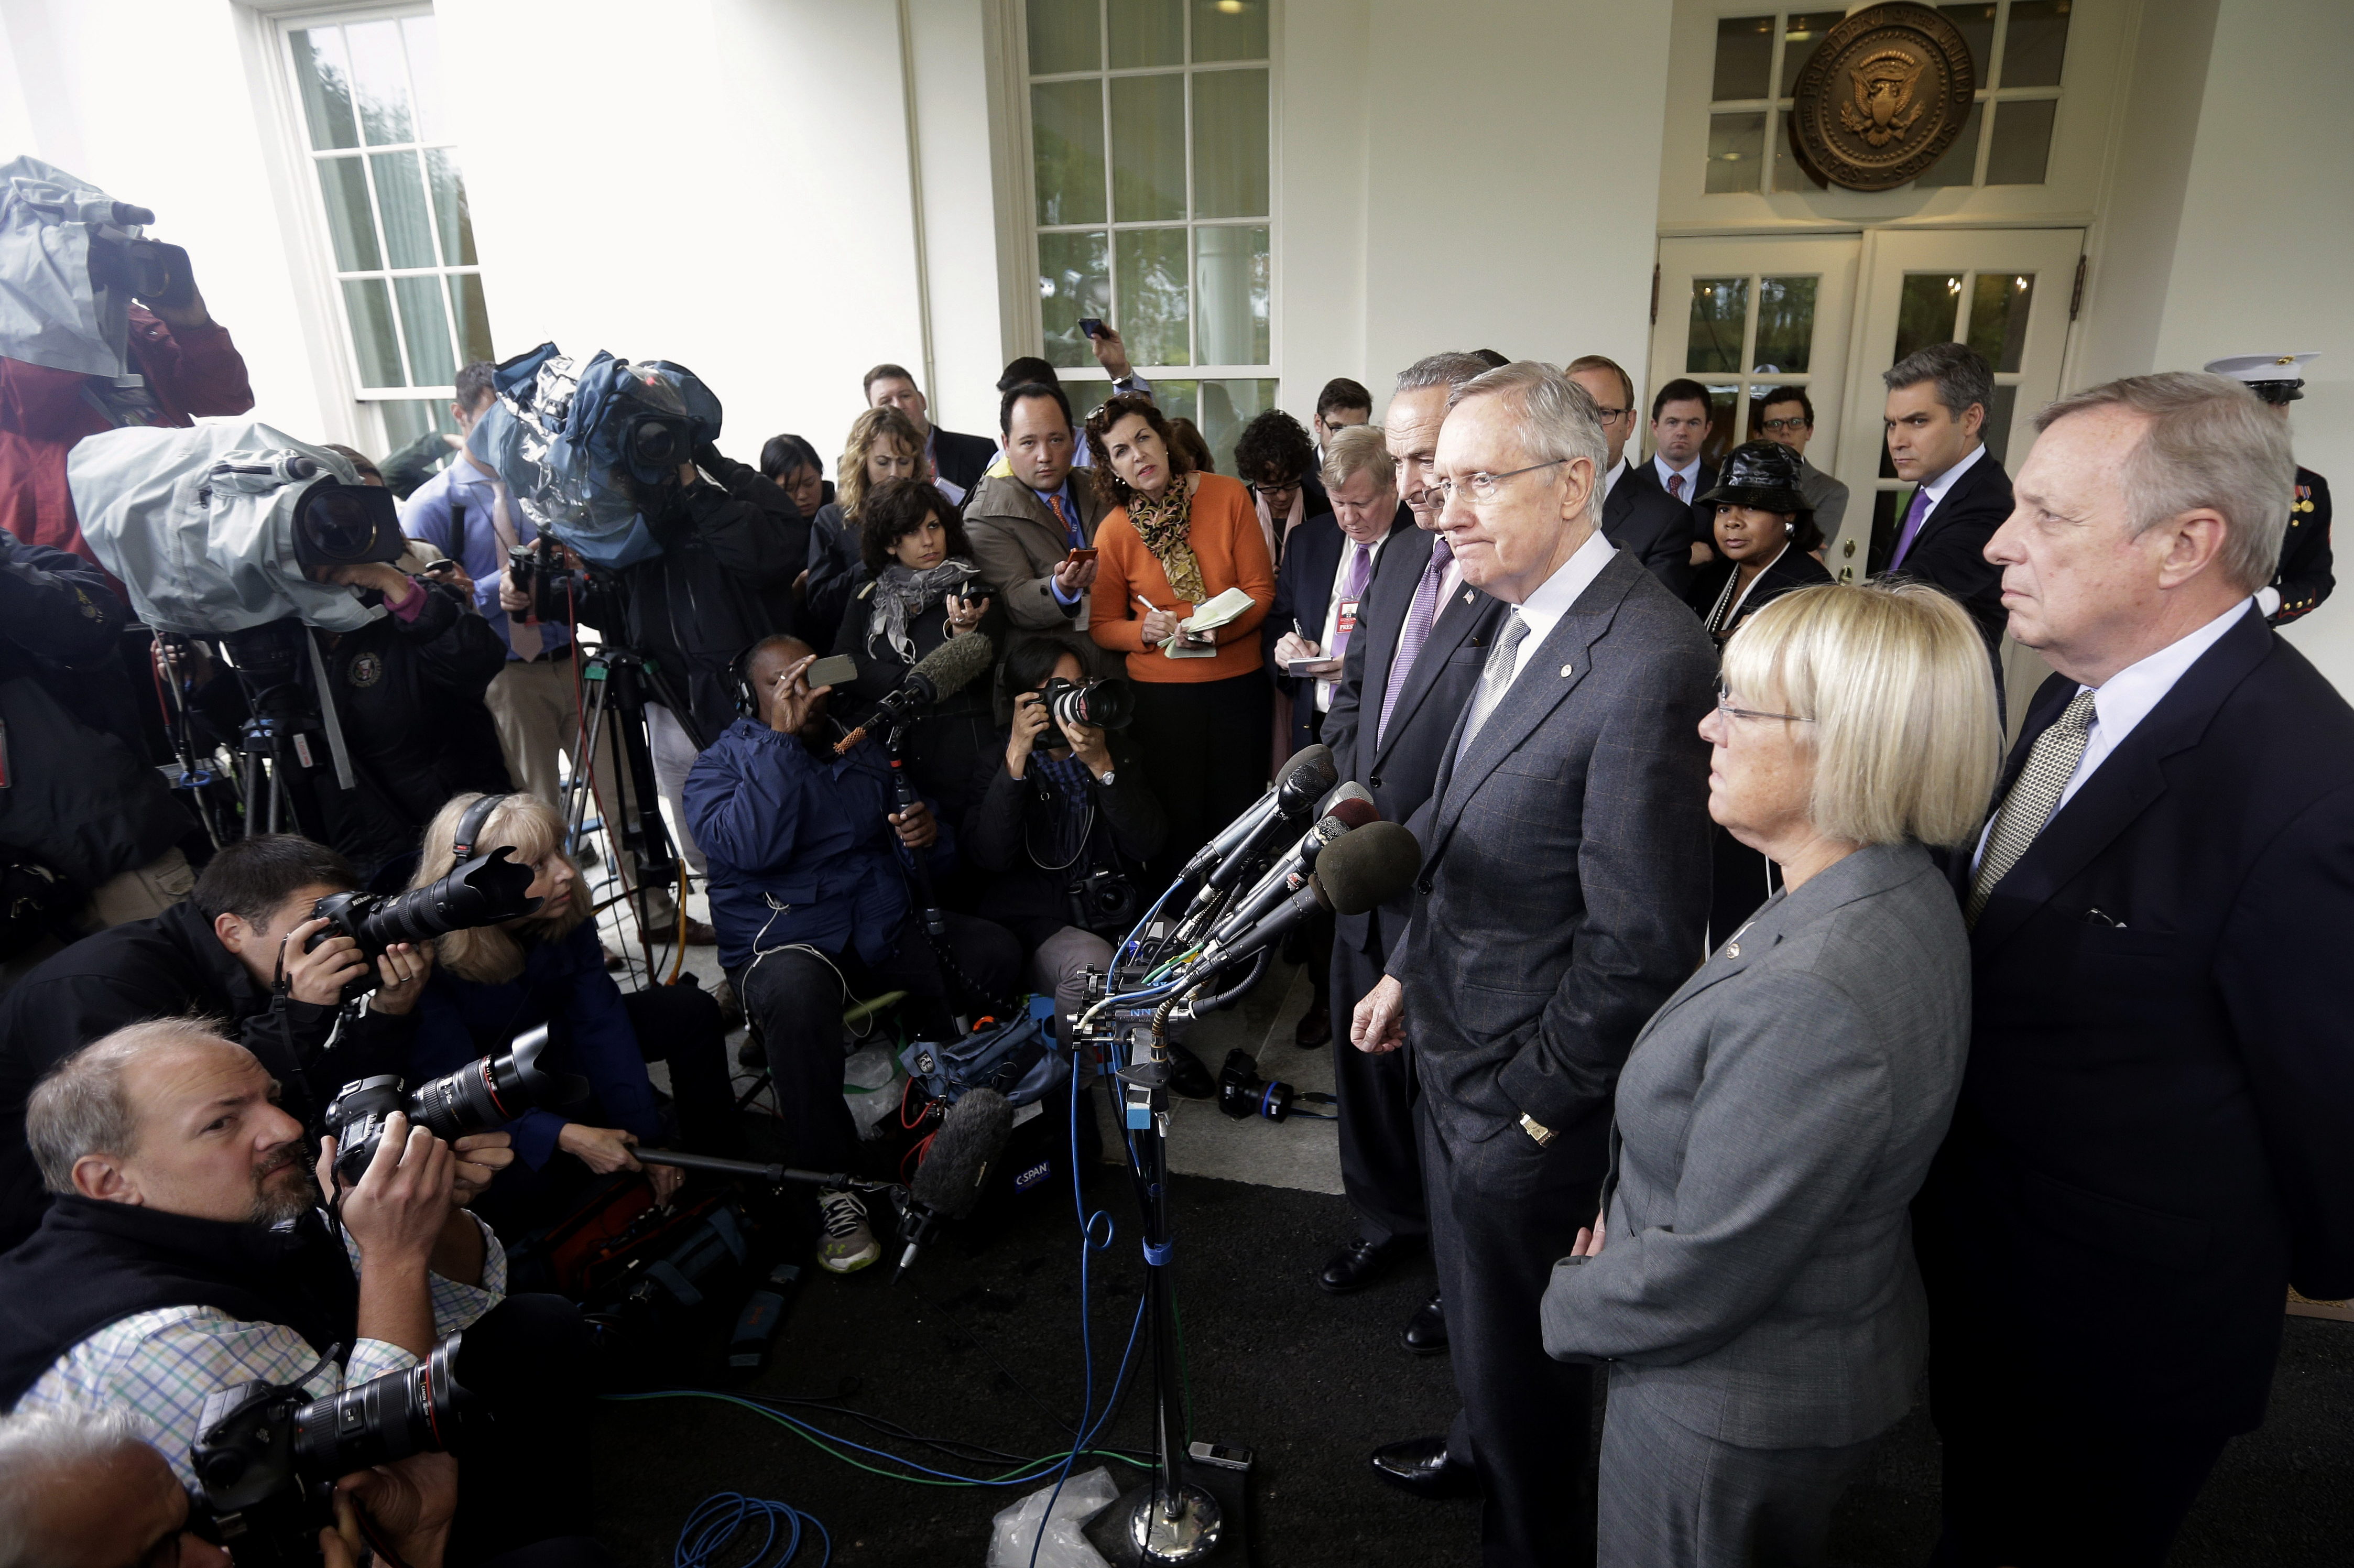 Senate Majority Leader Harry Reid, D-Nev., flanked by Sen. Charles Schumer, D-N.Y., Senate Budget Committee Chair Patty Murray, D-Wash., and Senate Majority Whip Richard Durbin, D-Ill., speaks to members of the media outside the West Wing of the White House on Oct. 10.